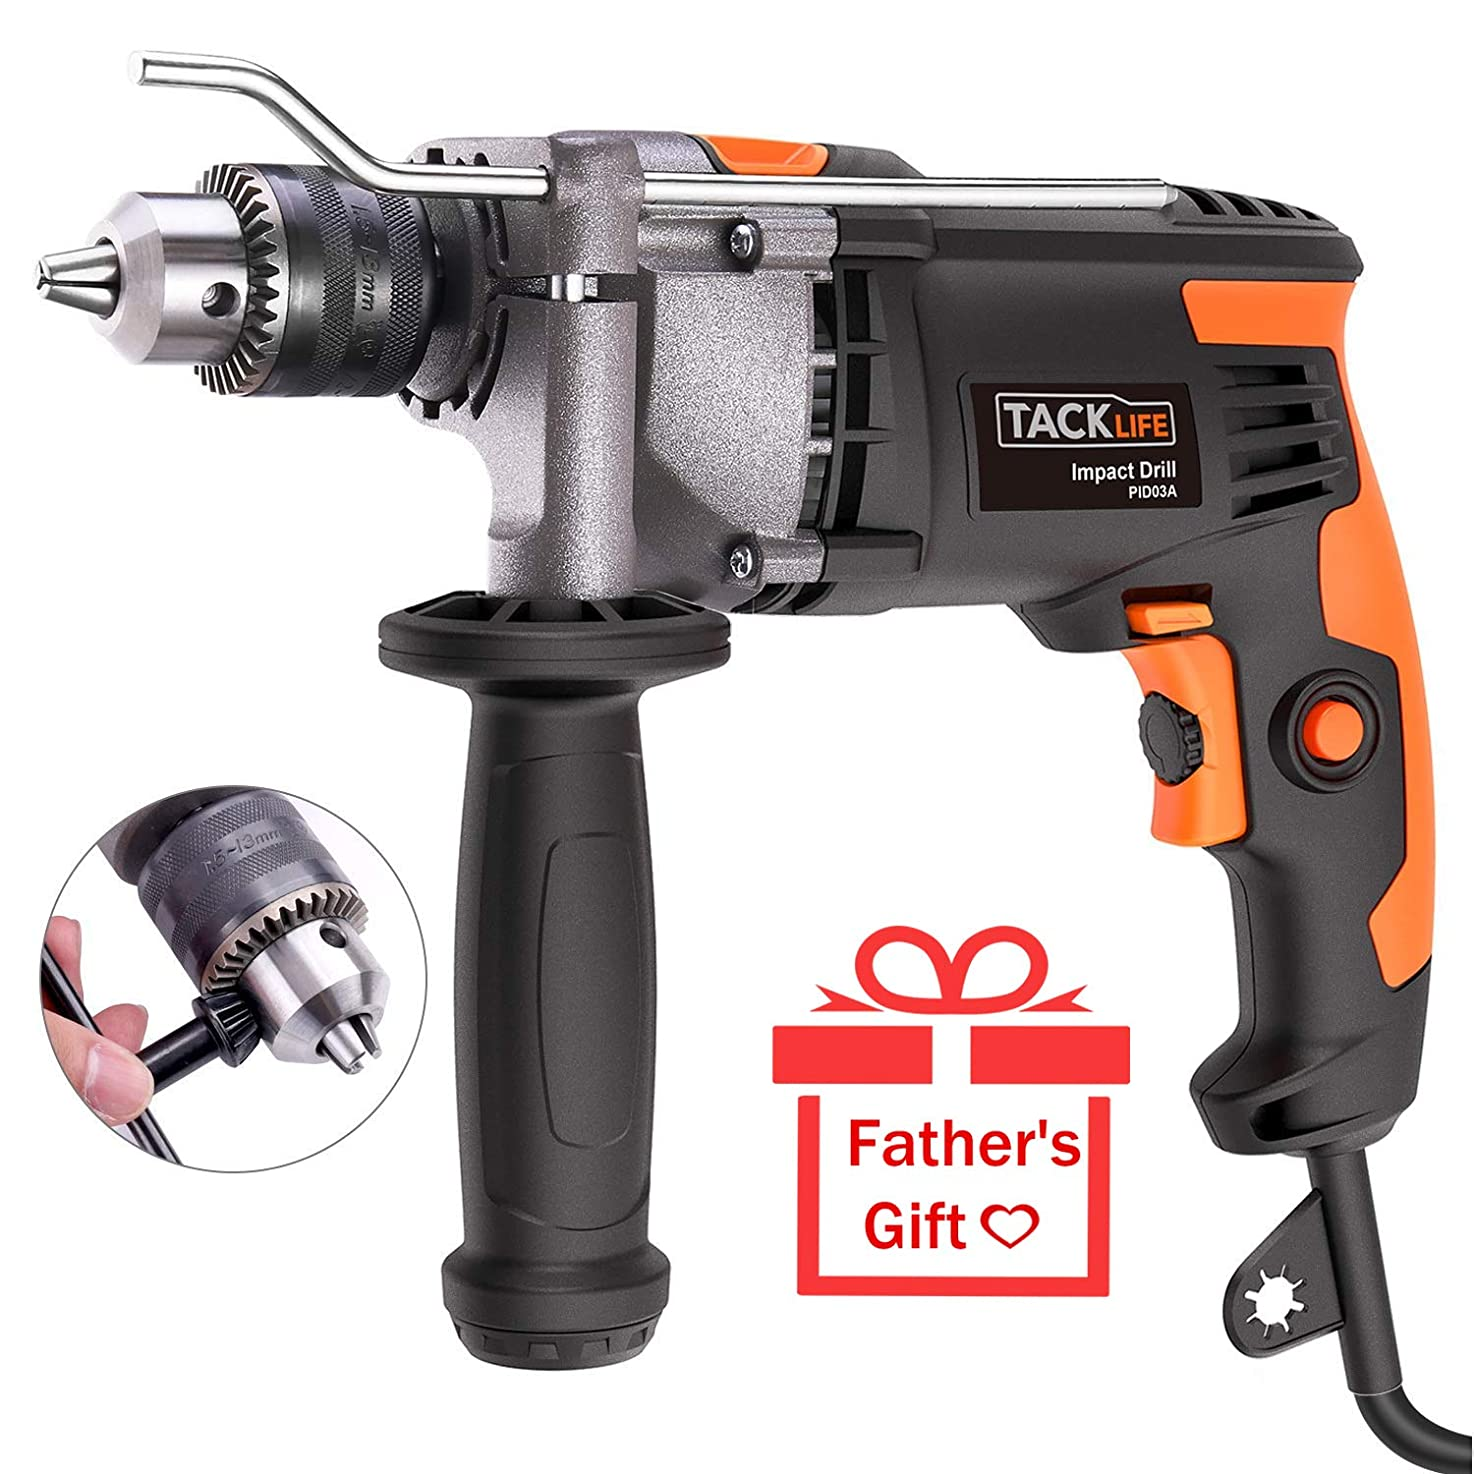 TACKLIFE Upgraded 7.1Amp/3000Rpm 1/2-Inch(13mm) Corded Hammer Drill with Aluminium Alloy Cover, Metal Rotating Handle, Variable Speed Trigger,Rotary Hammer, Ideal Tool for DIY - PID03A dkveaaautyvri2